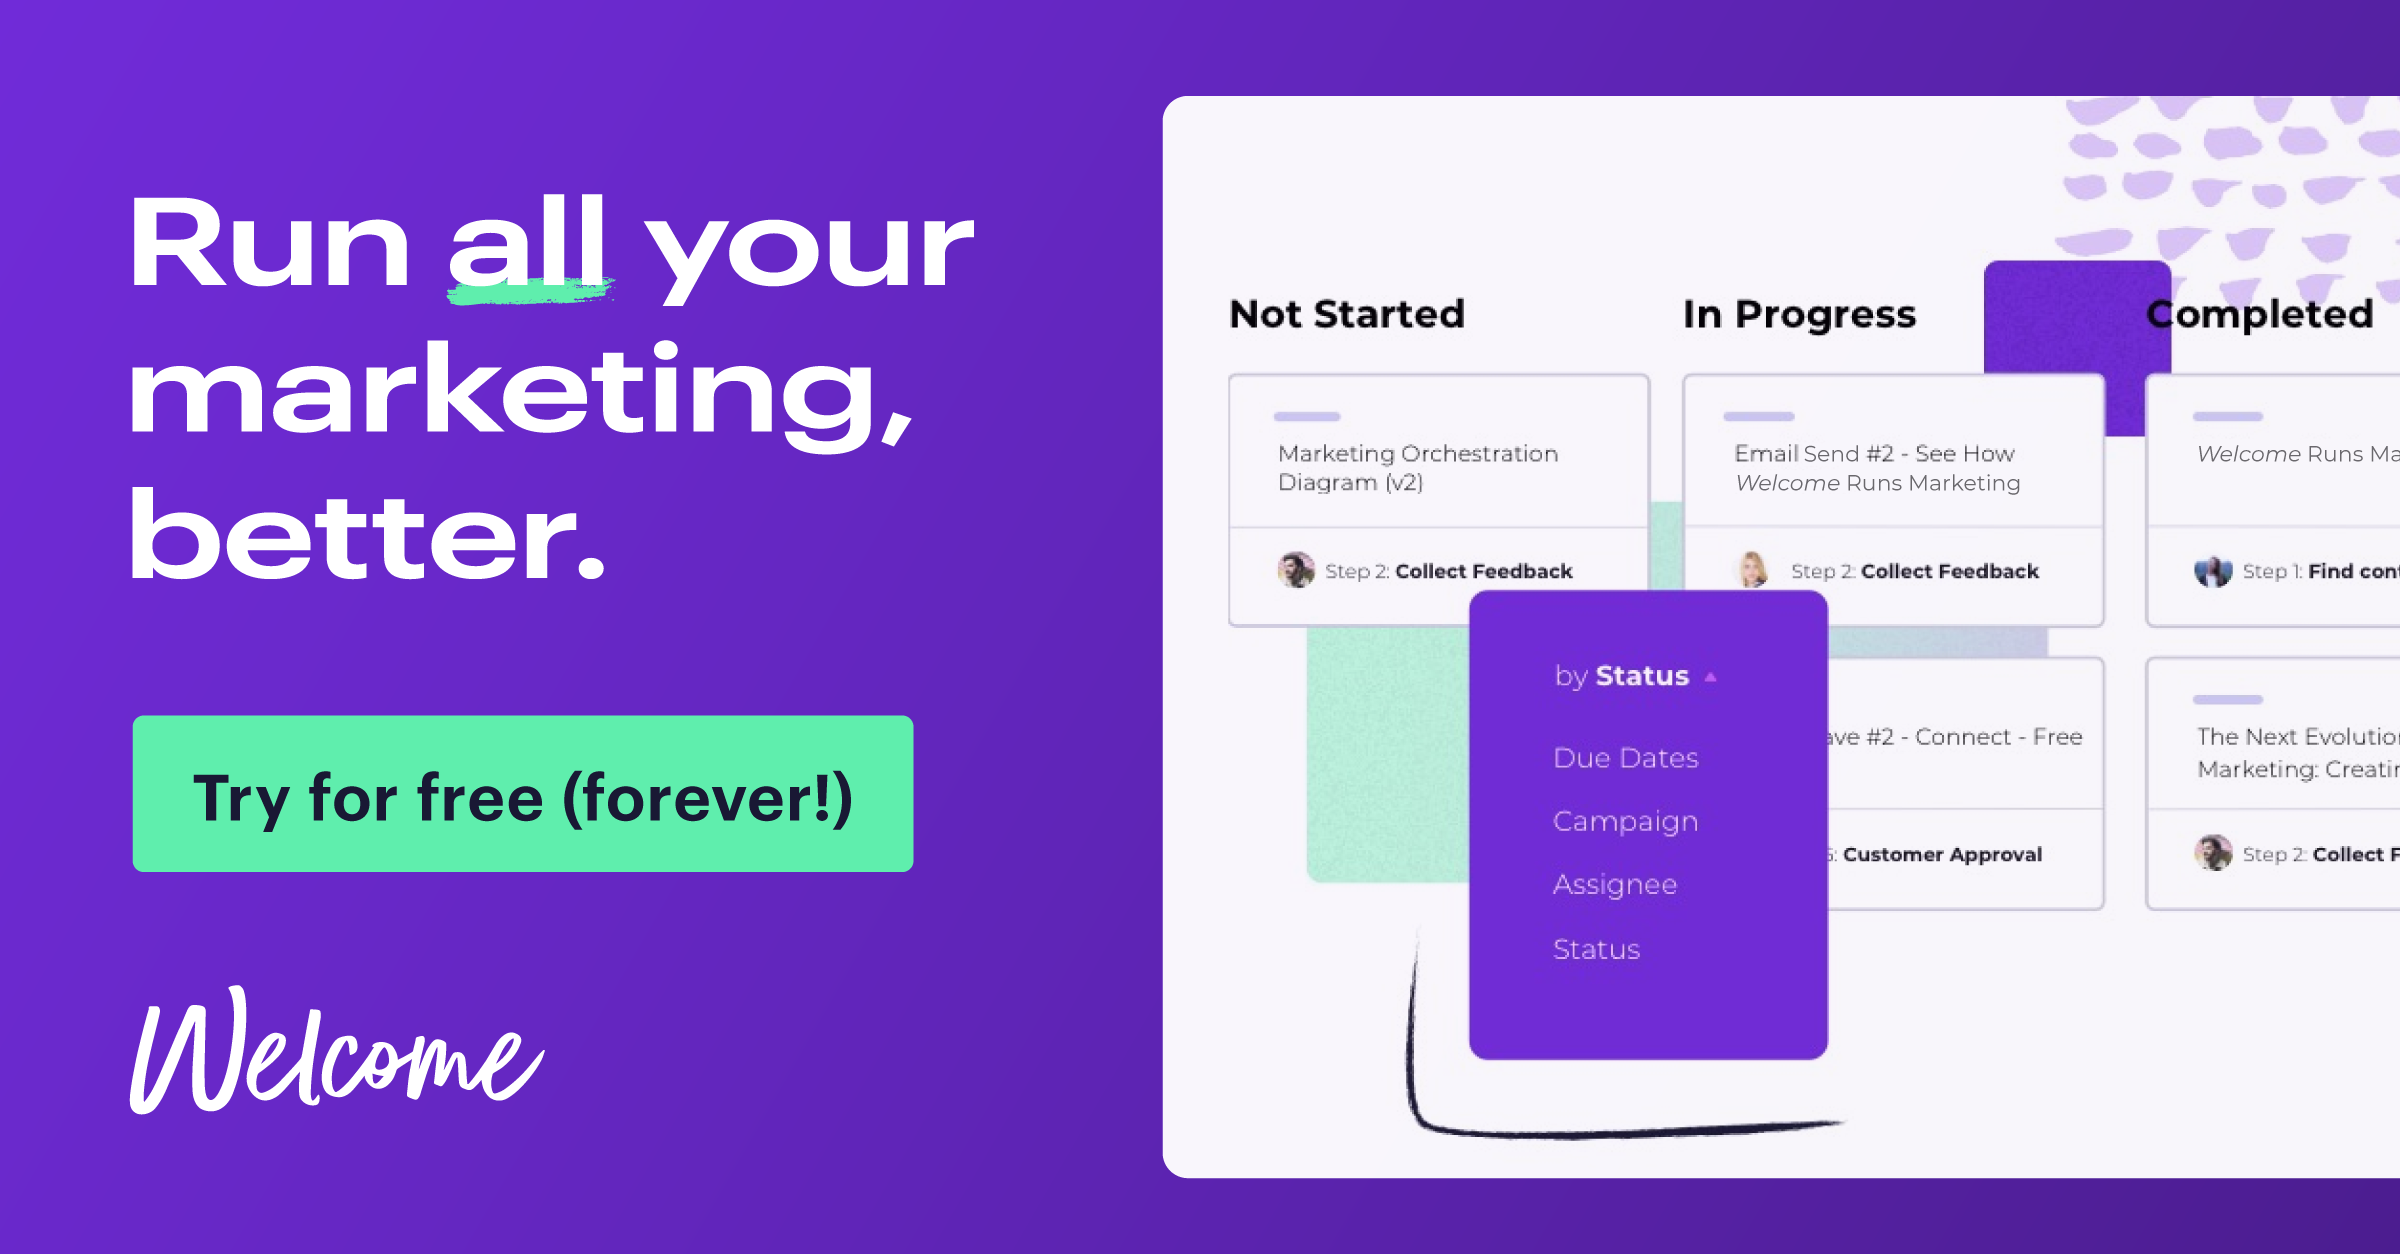 Try Welcome for free - forever. One platform to run all your marketing, better.